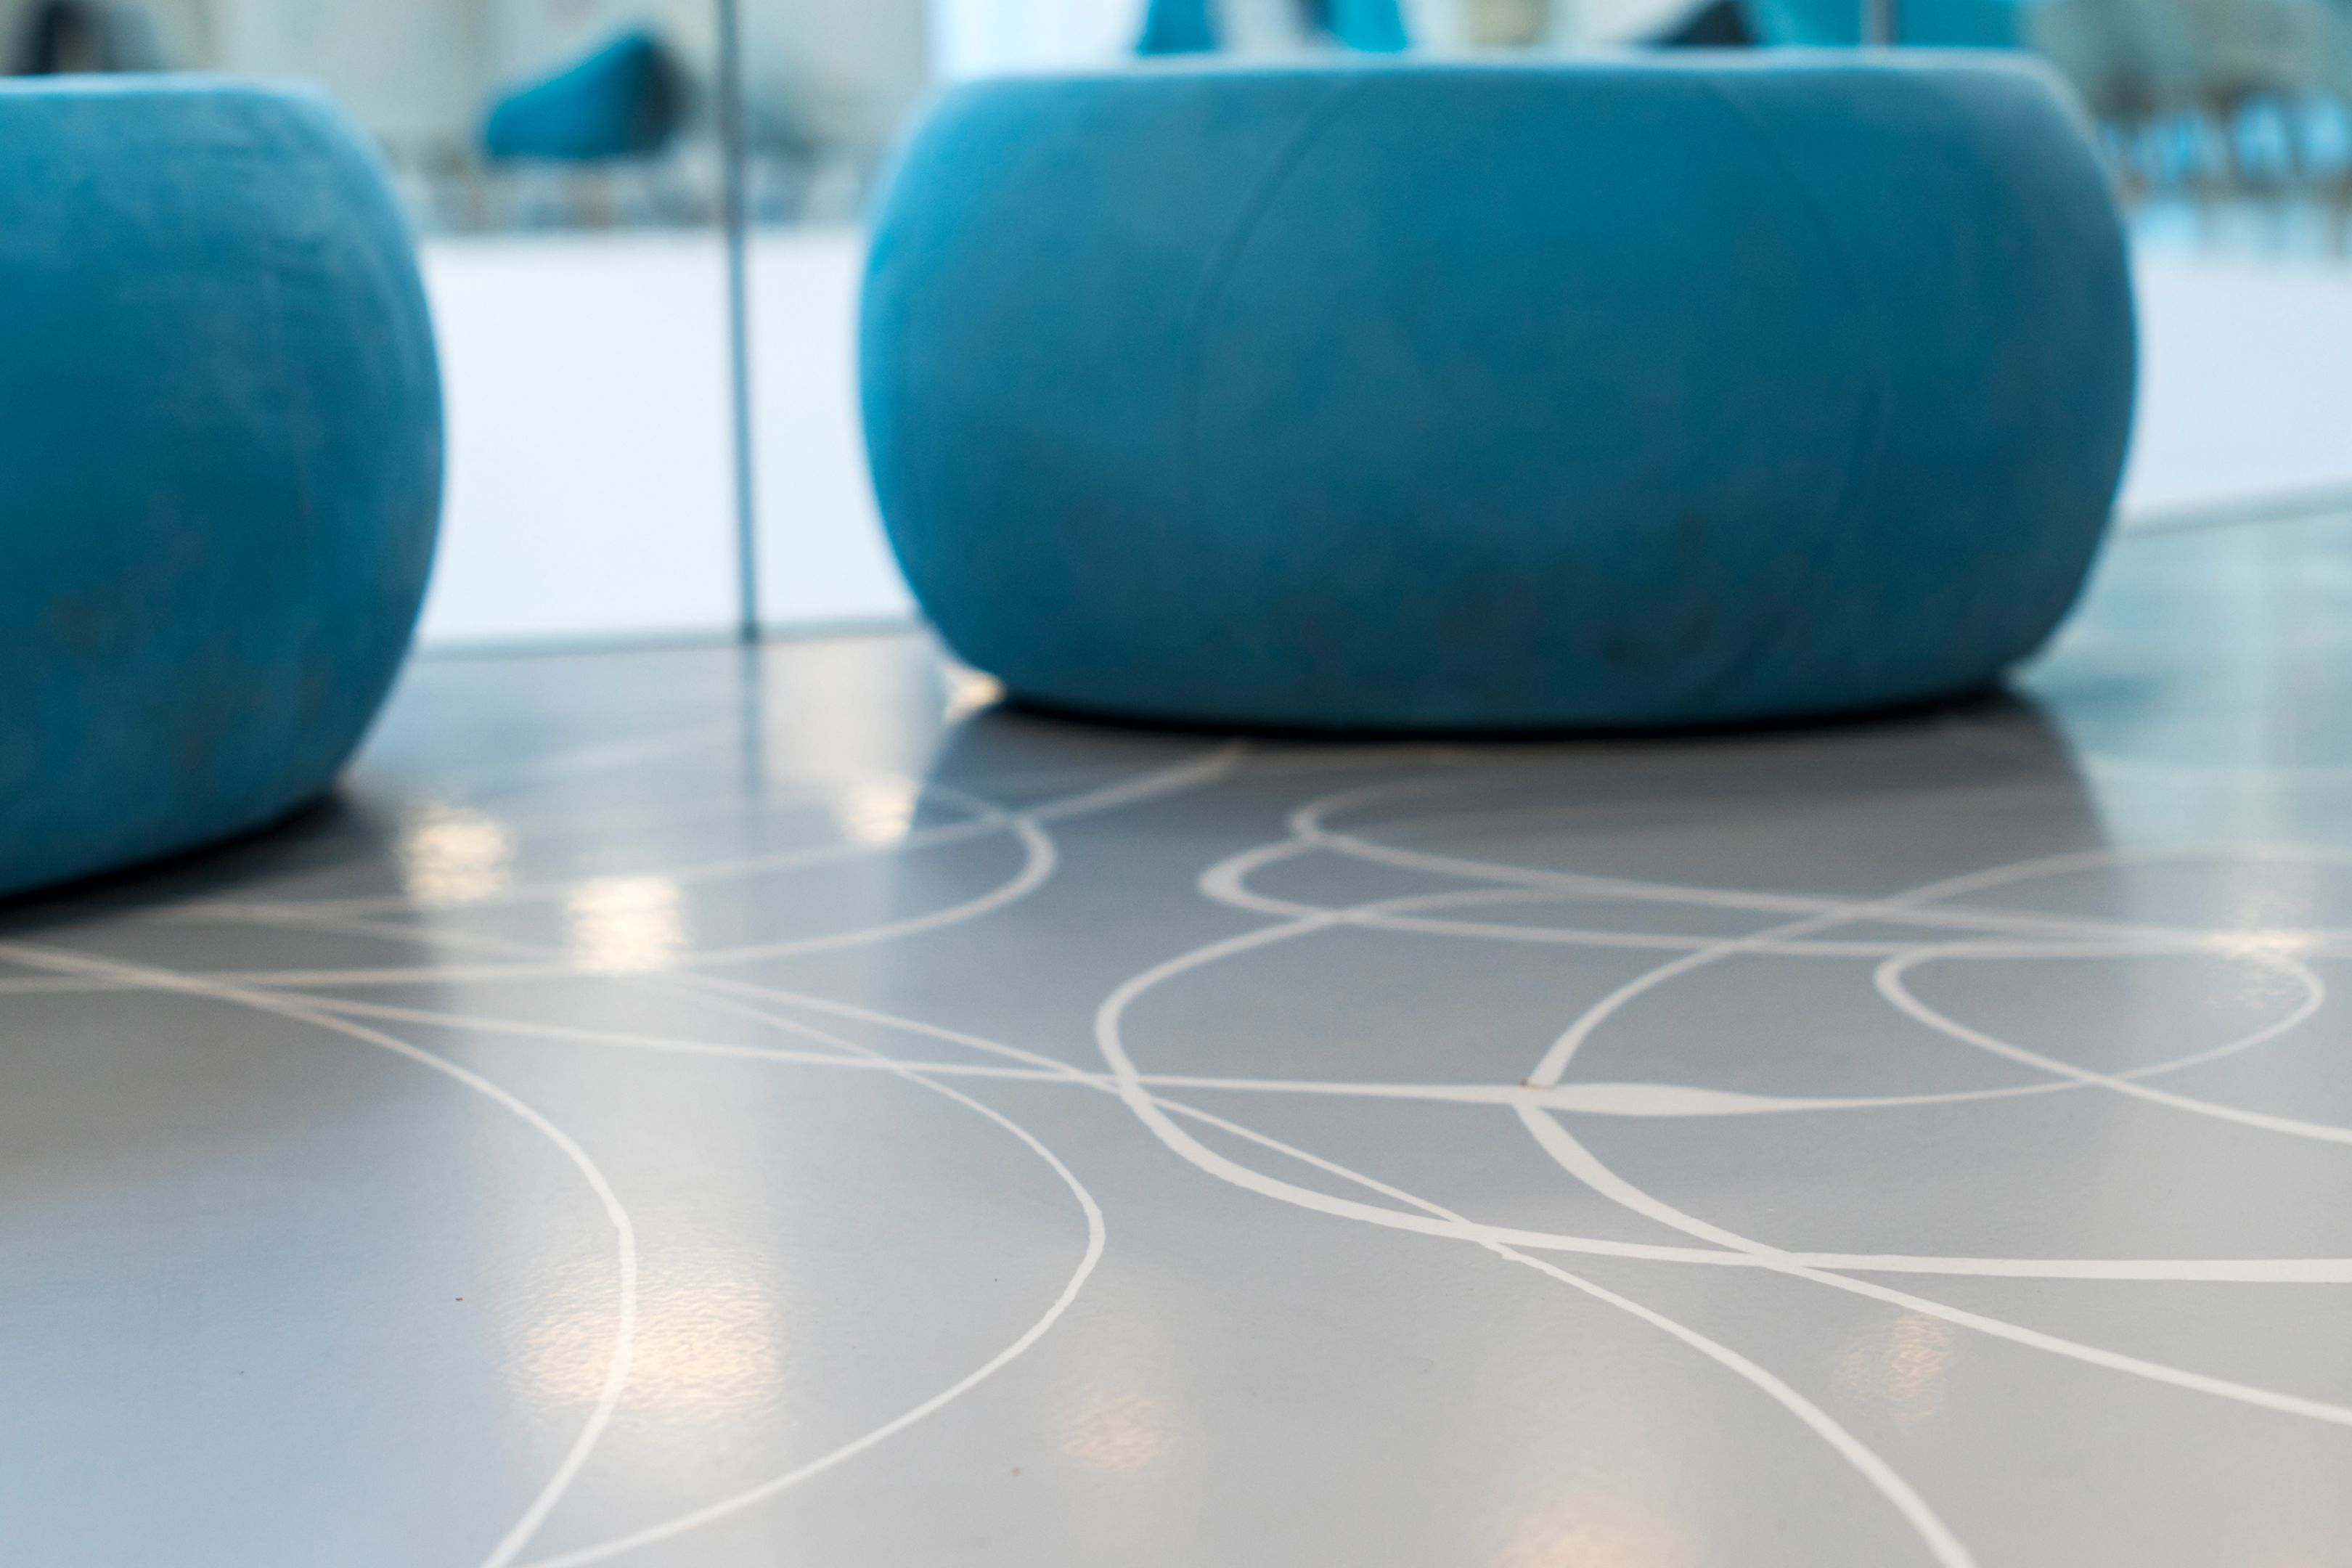 Sika® Comfortfloor® s a seamless, fluid-applied polyurethane floor system